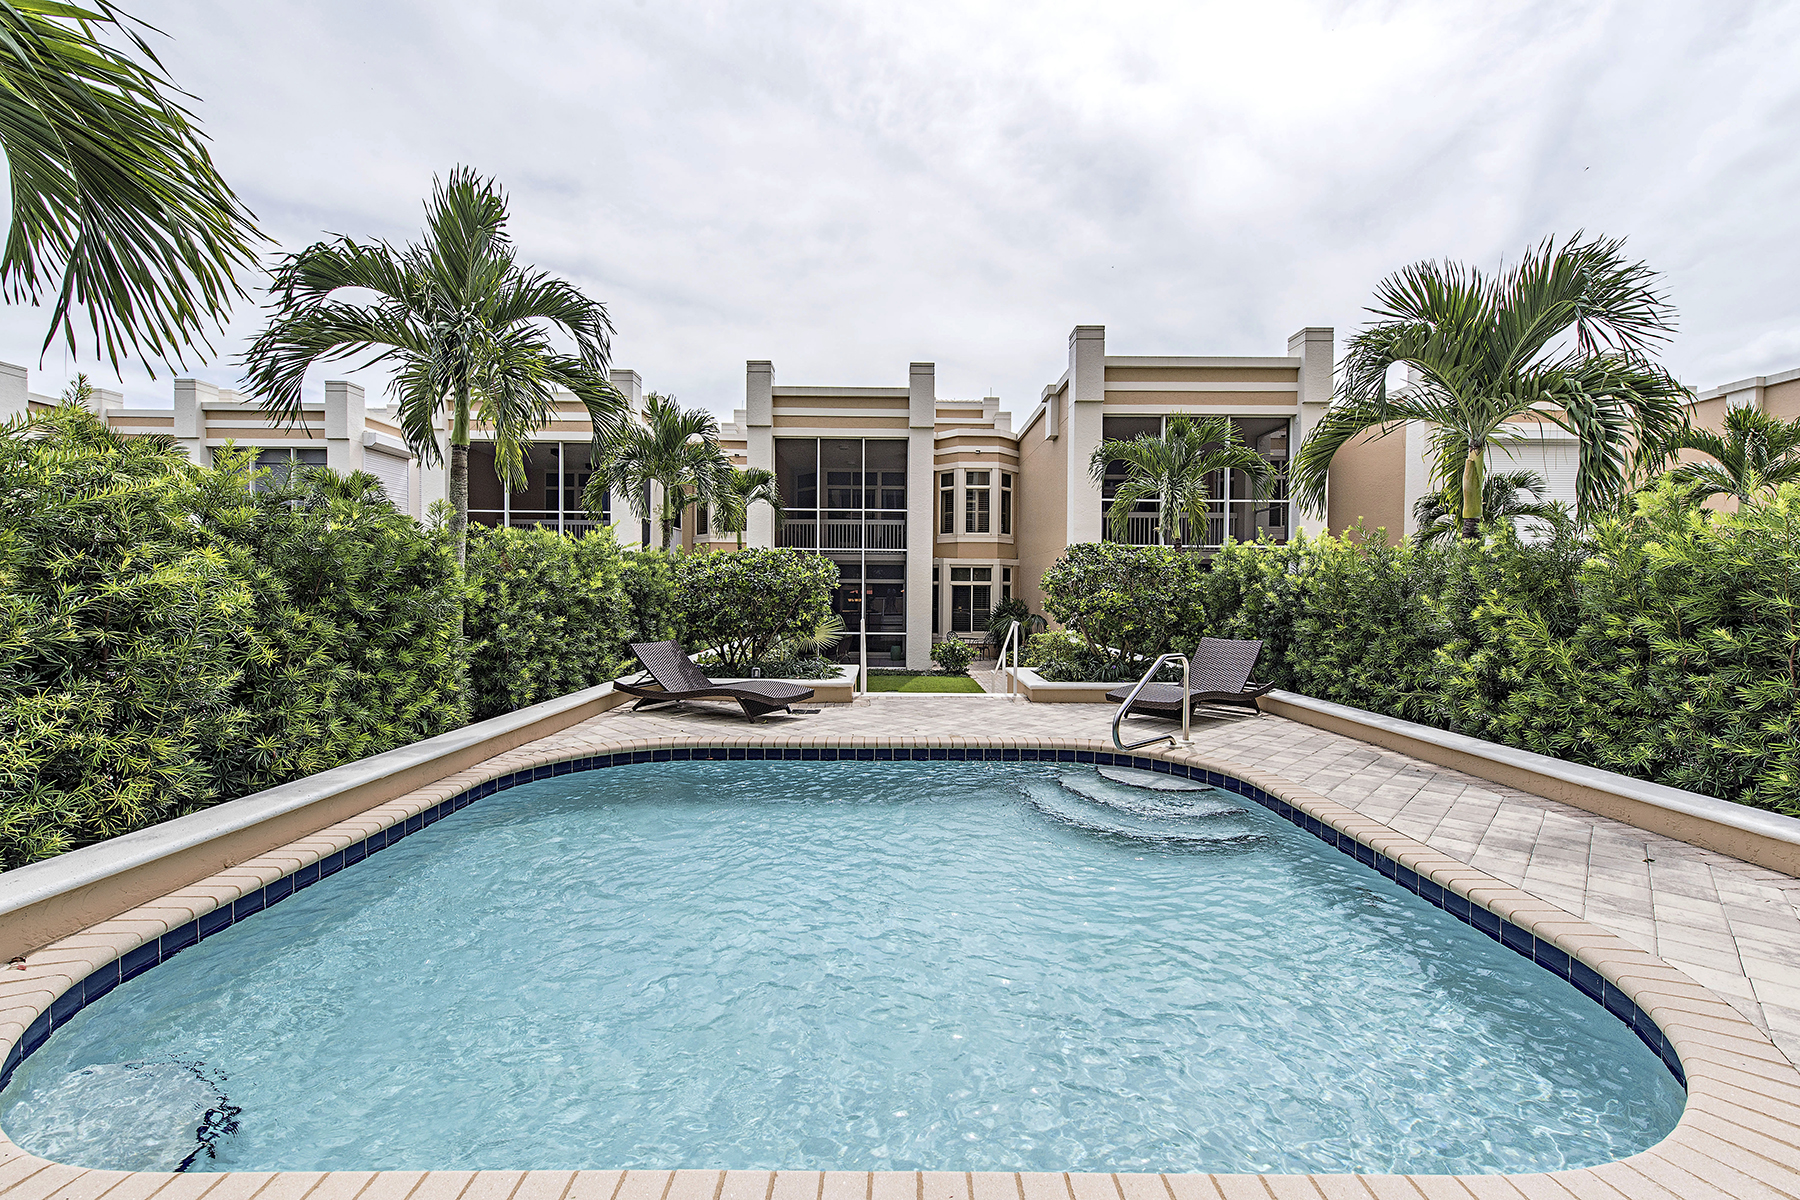 Condominium for Sale at PELICAN BAY - ST RAPHAEL 7083 Pelican Bay Blvd V-11, Naples, Florida 34108 United States